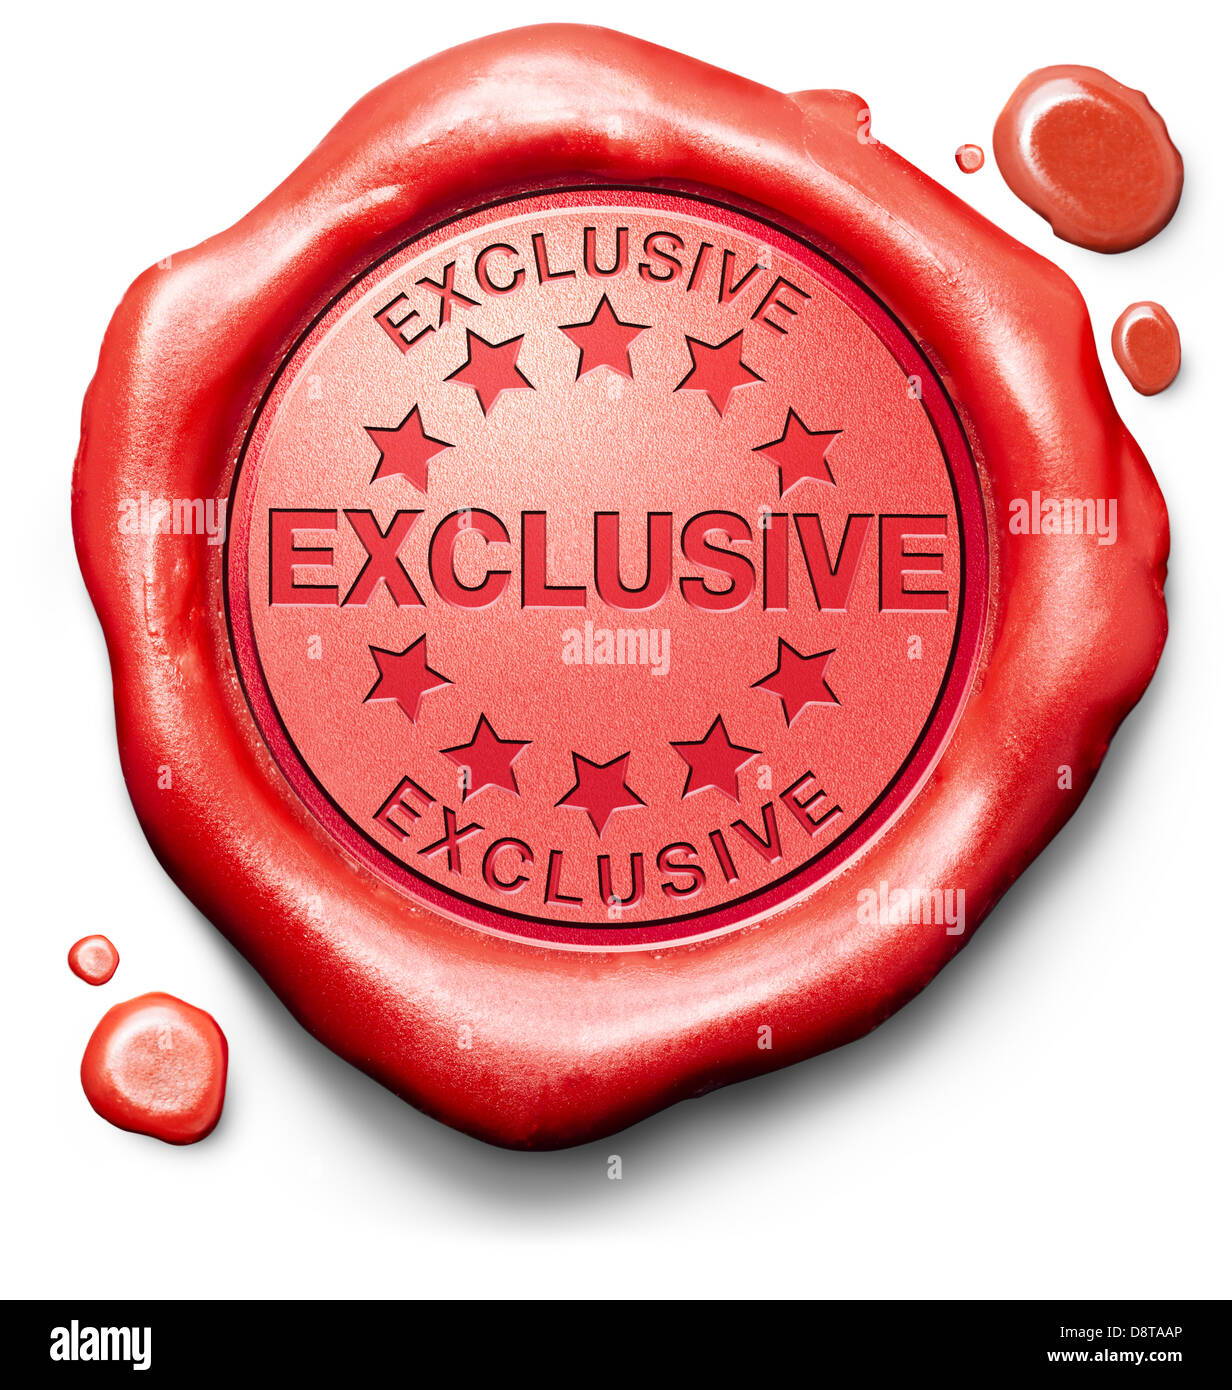 exclusive offer or VIP treatment rare high quality product with limited production icon seal or stamp - Stock Image